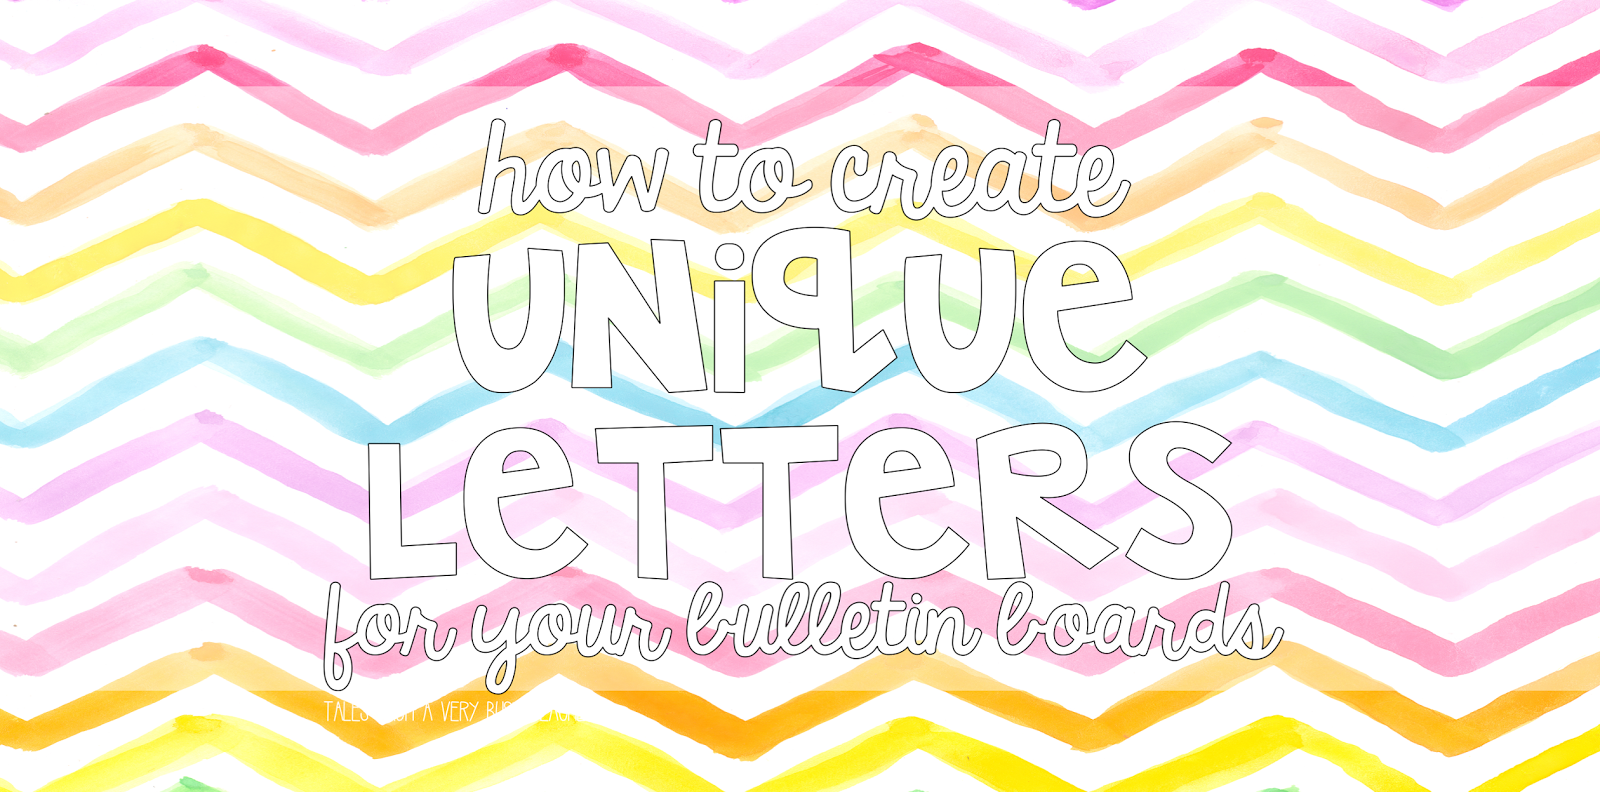 Unique bulletin board letters for your classroom tales from a unique bulletin board letters for your classroom spiritdancerdesigns Images